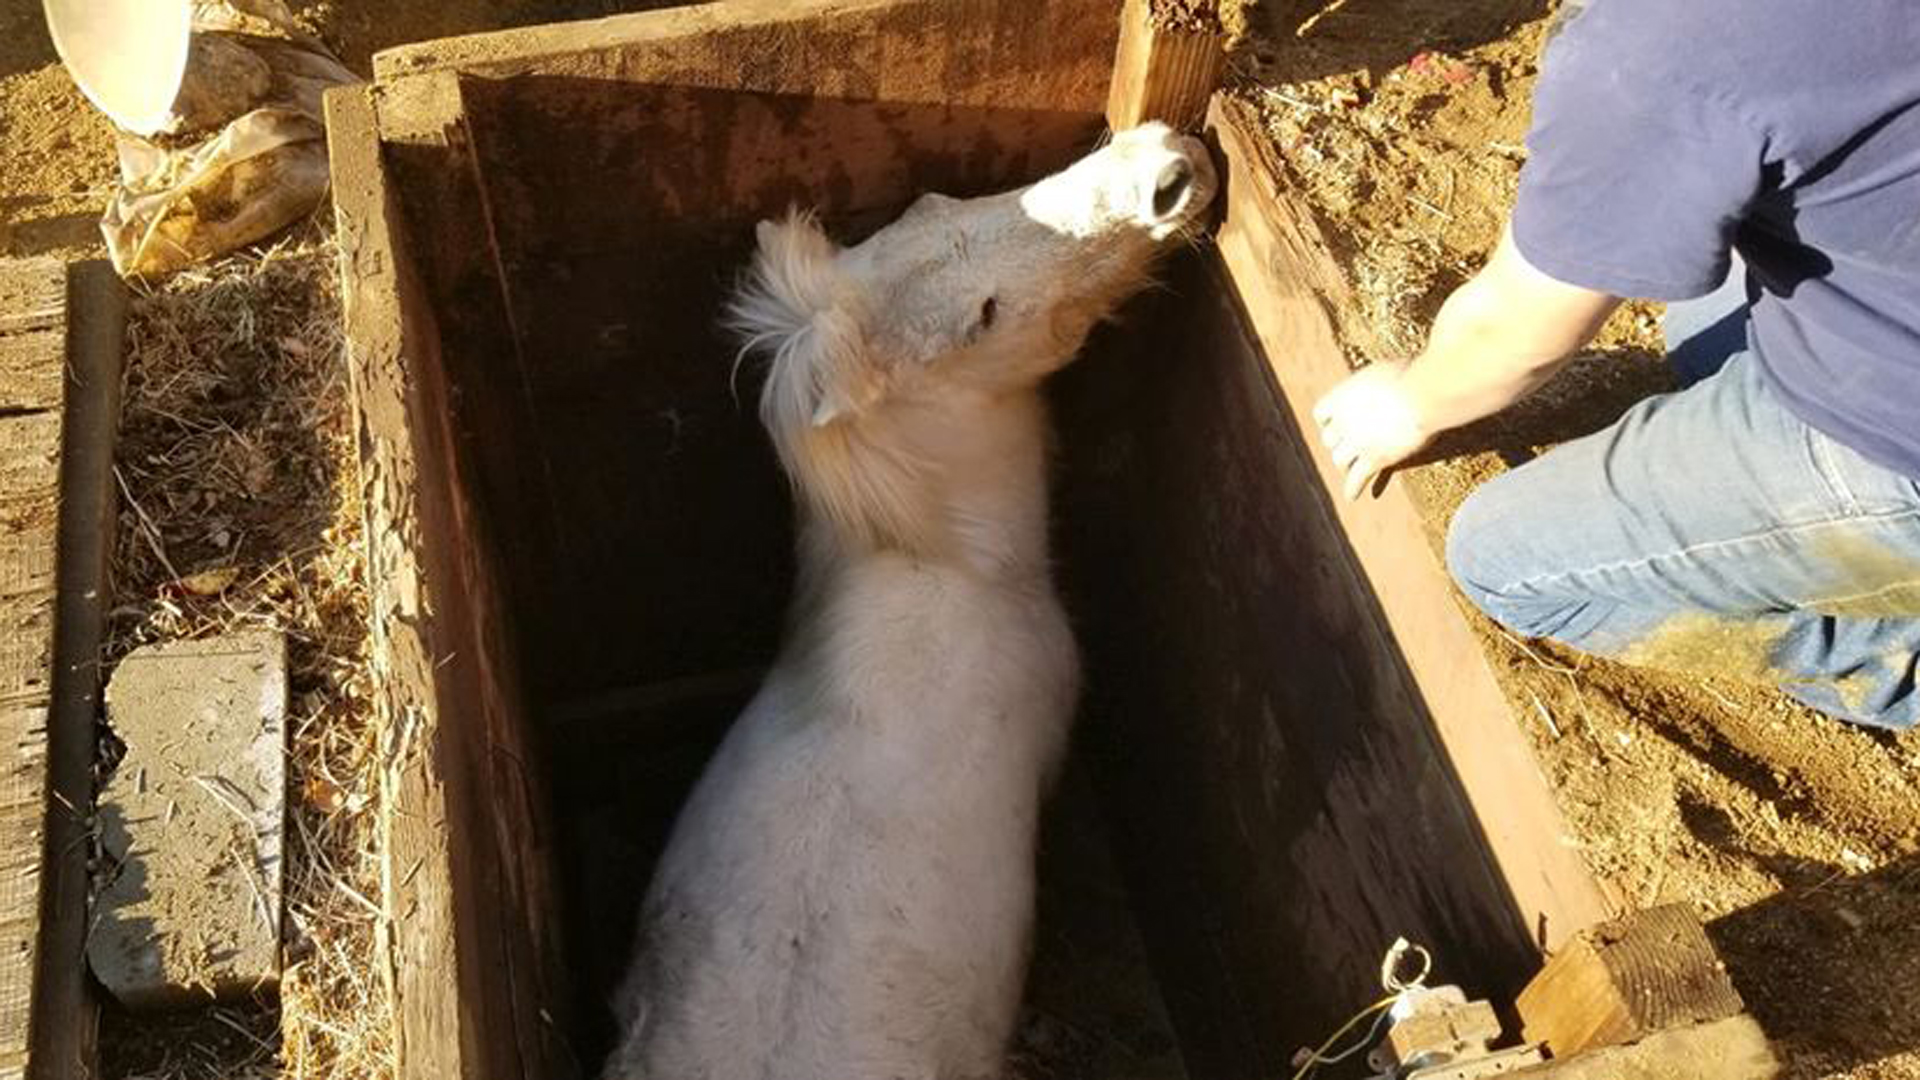 Firefighters rescued a horse trapped in a pit near Barstow on Dec. 27, 2019. (Credit: San Bernardino County Fire Department)